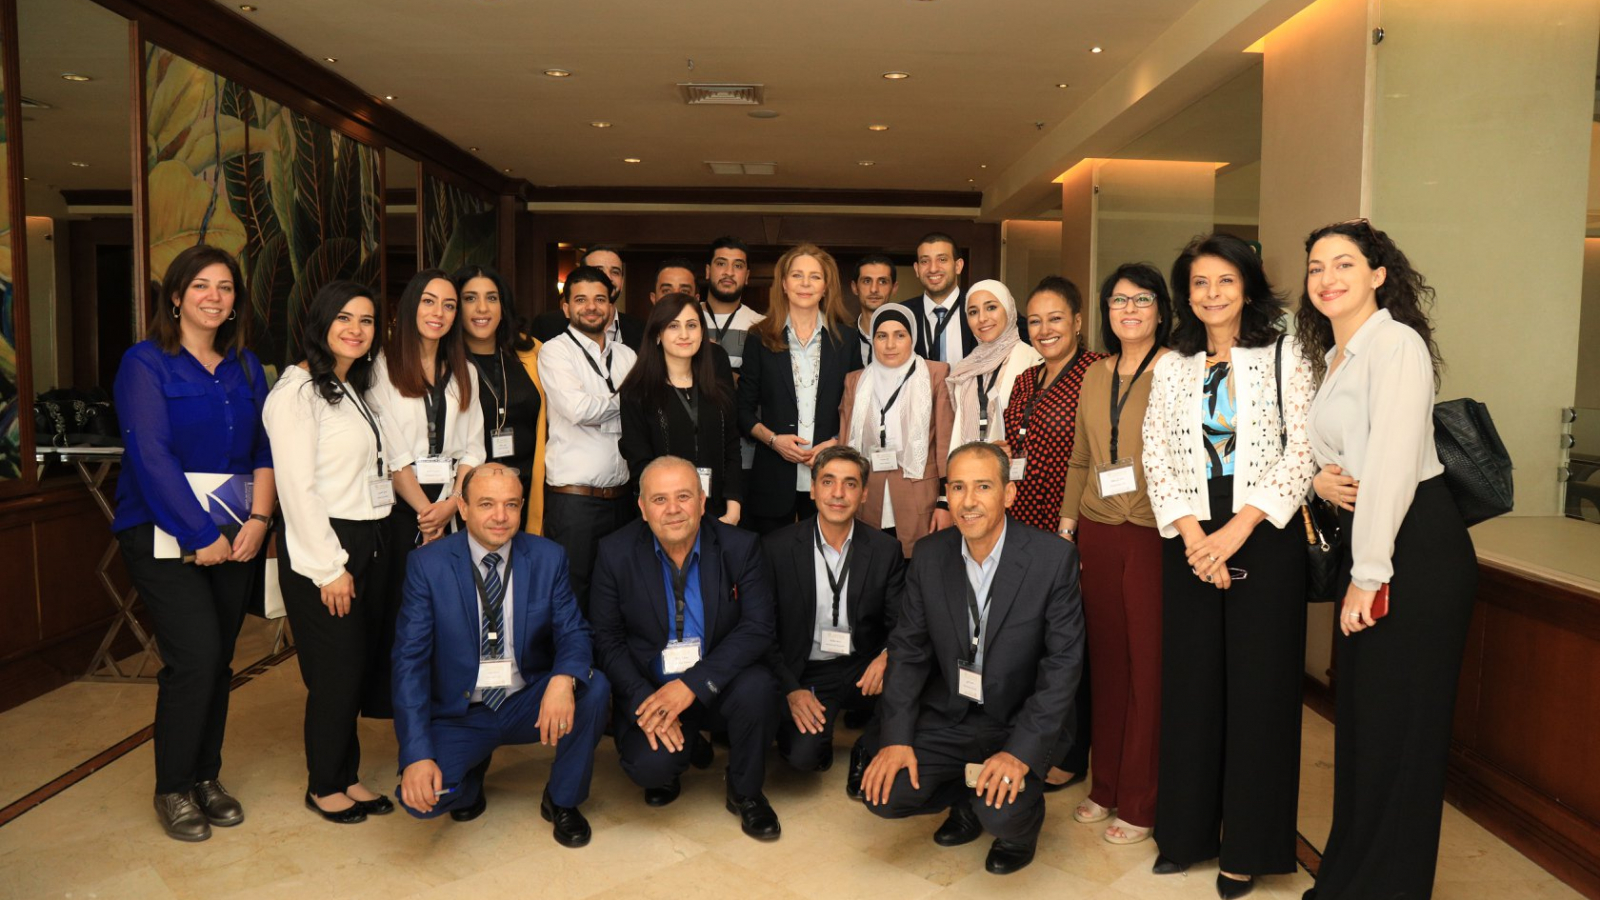 EU in Jordan believes in the national efforts promoting civil society organizations and human rights